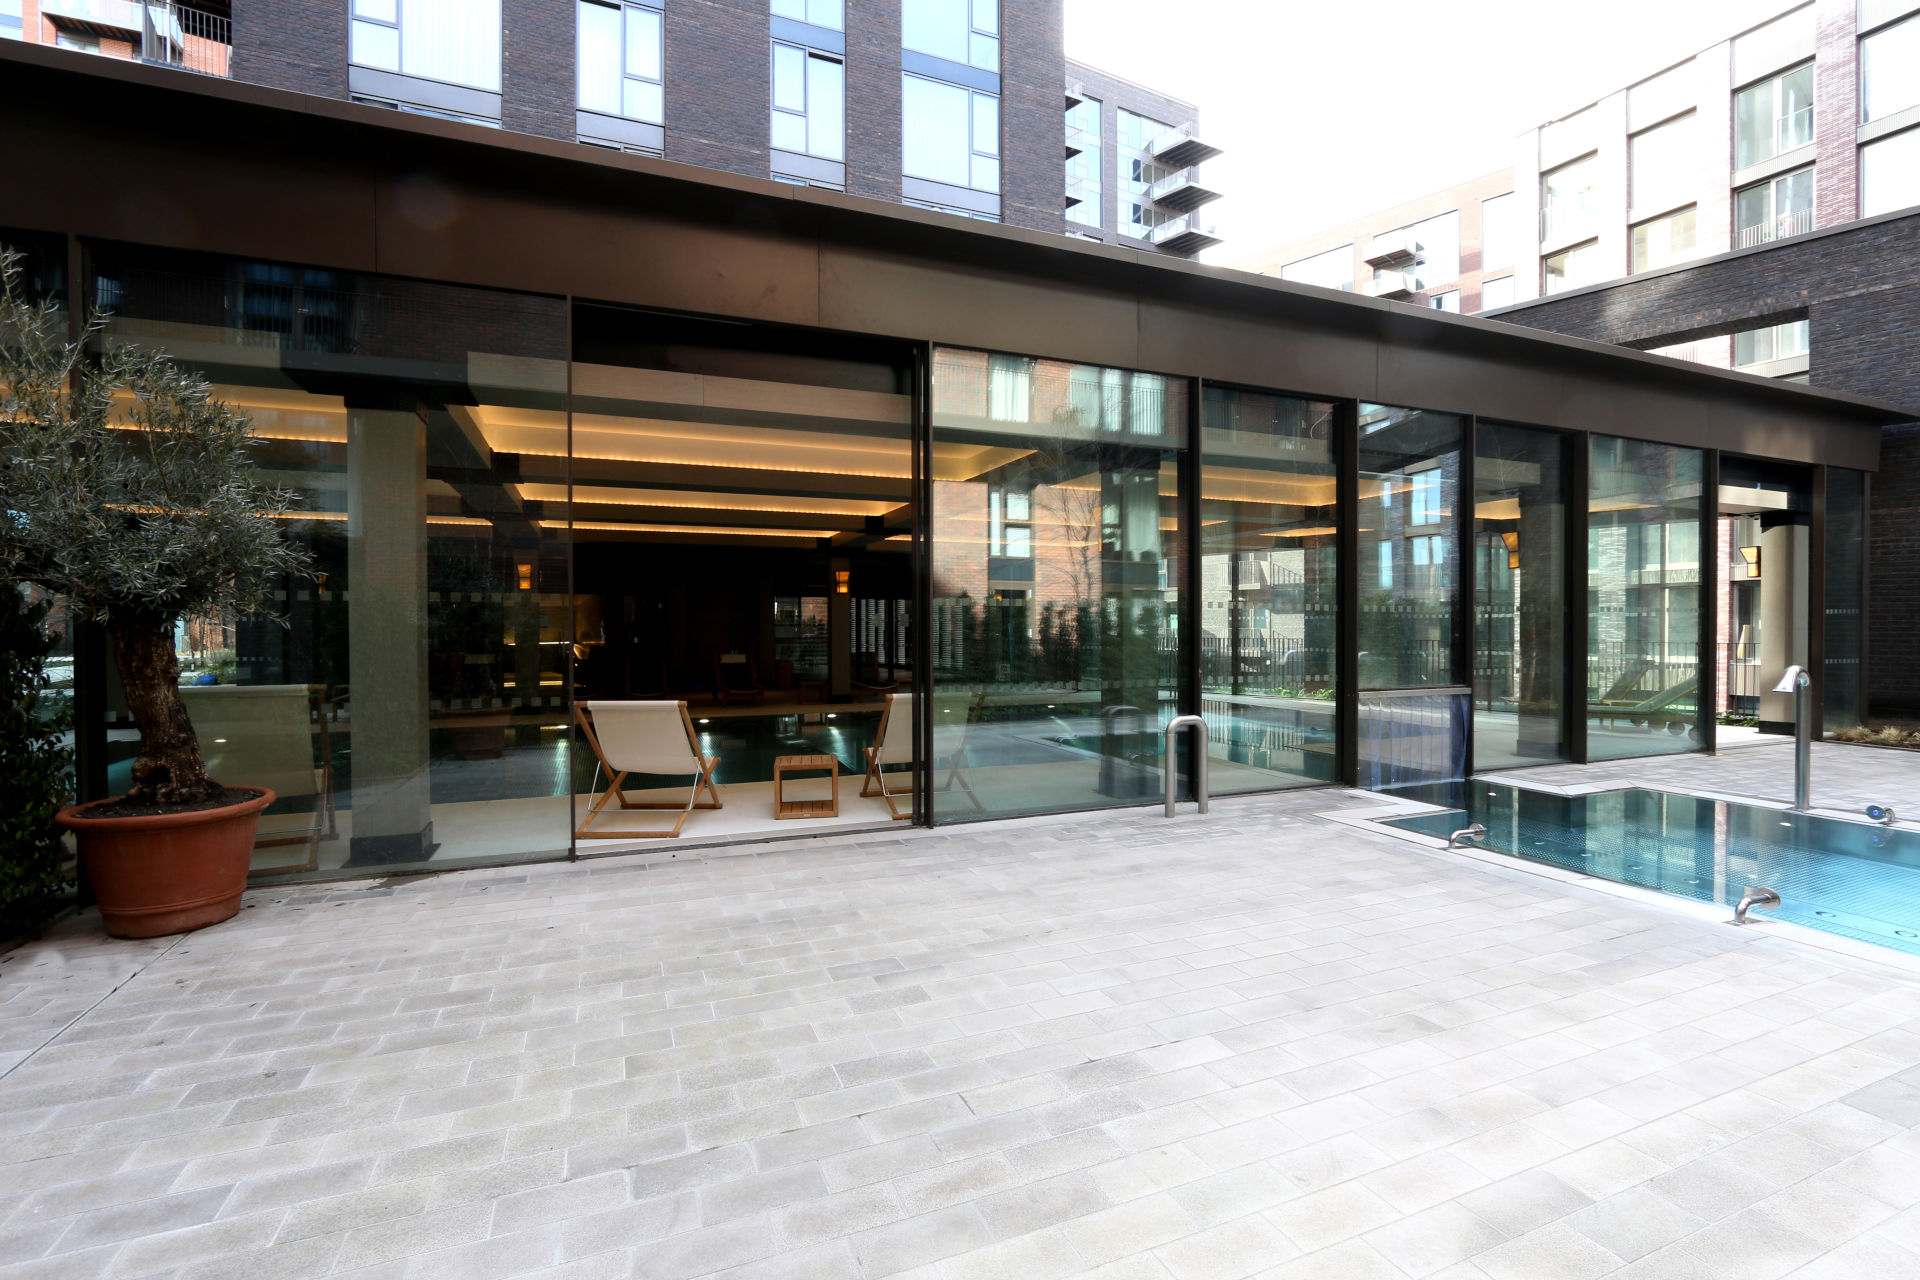 Embassy-Gardens-slim-framed-sliding-glass-doors